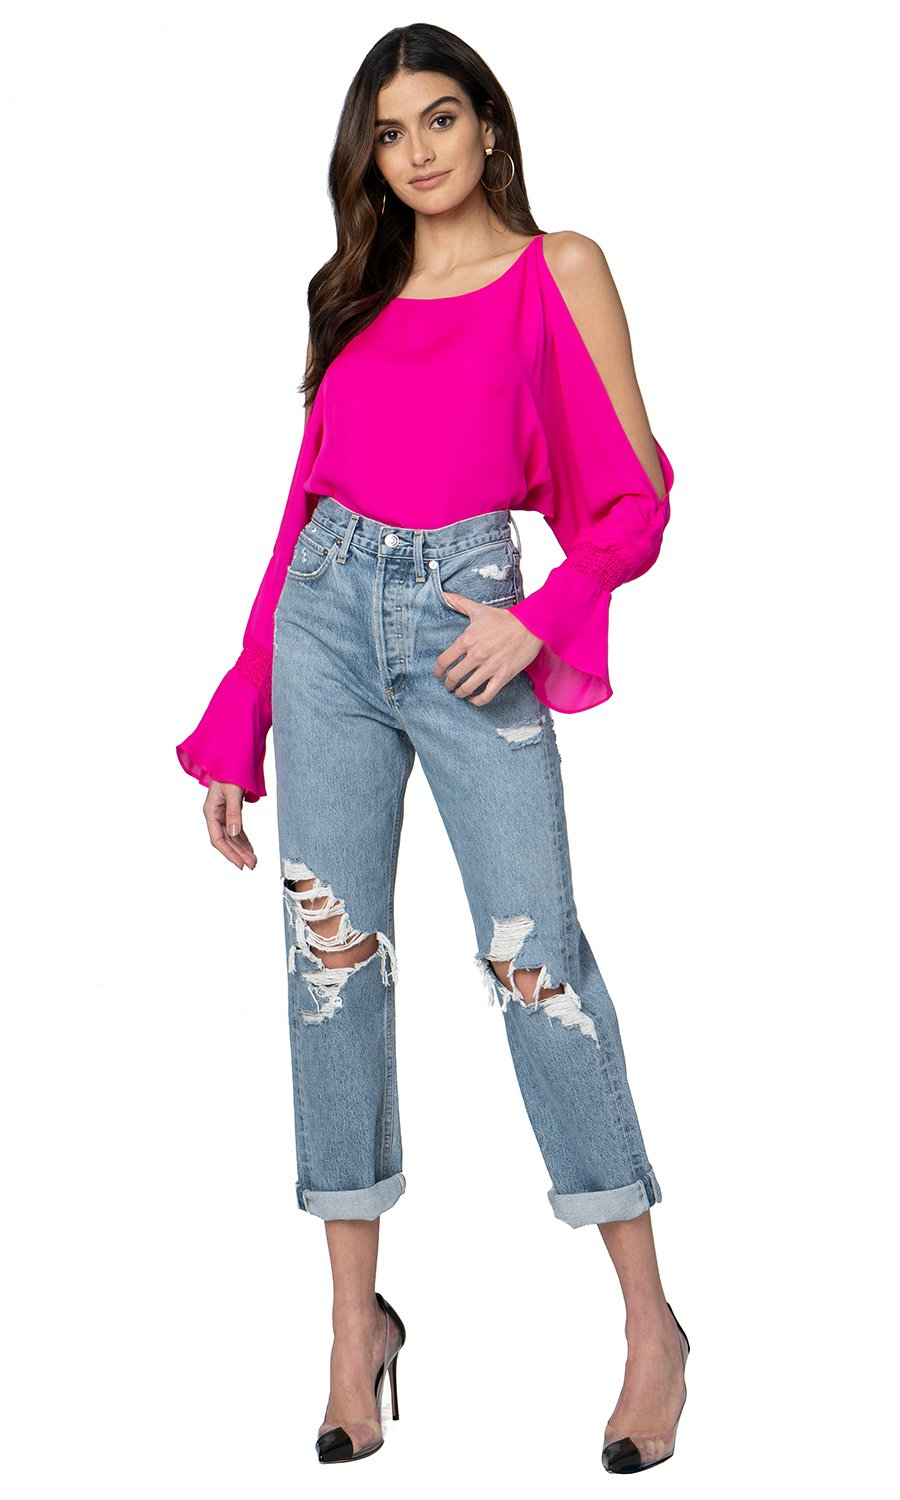 Jennifer Hope Clothing Silk Sherry Blouse Top in Pop Pink